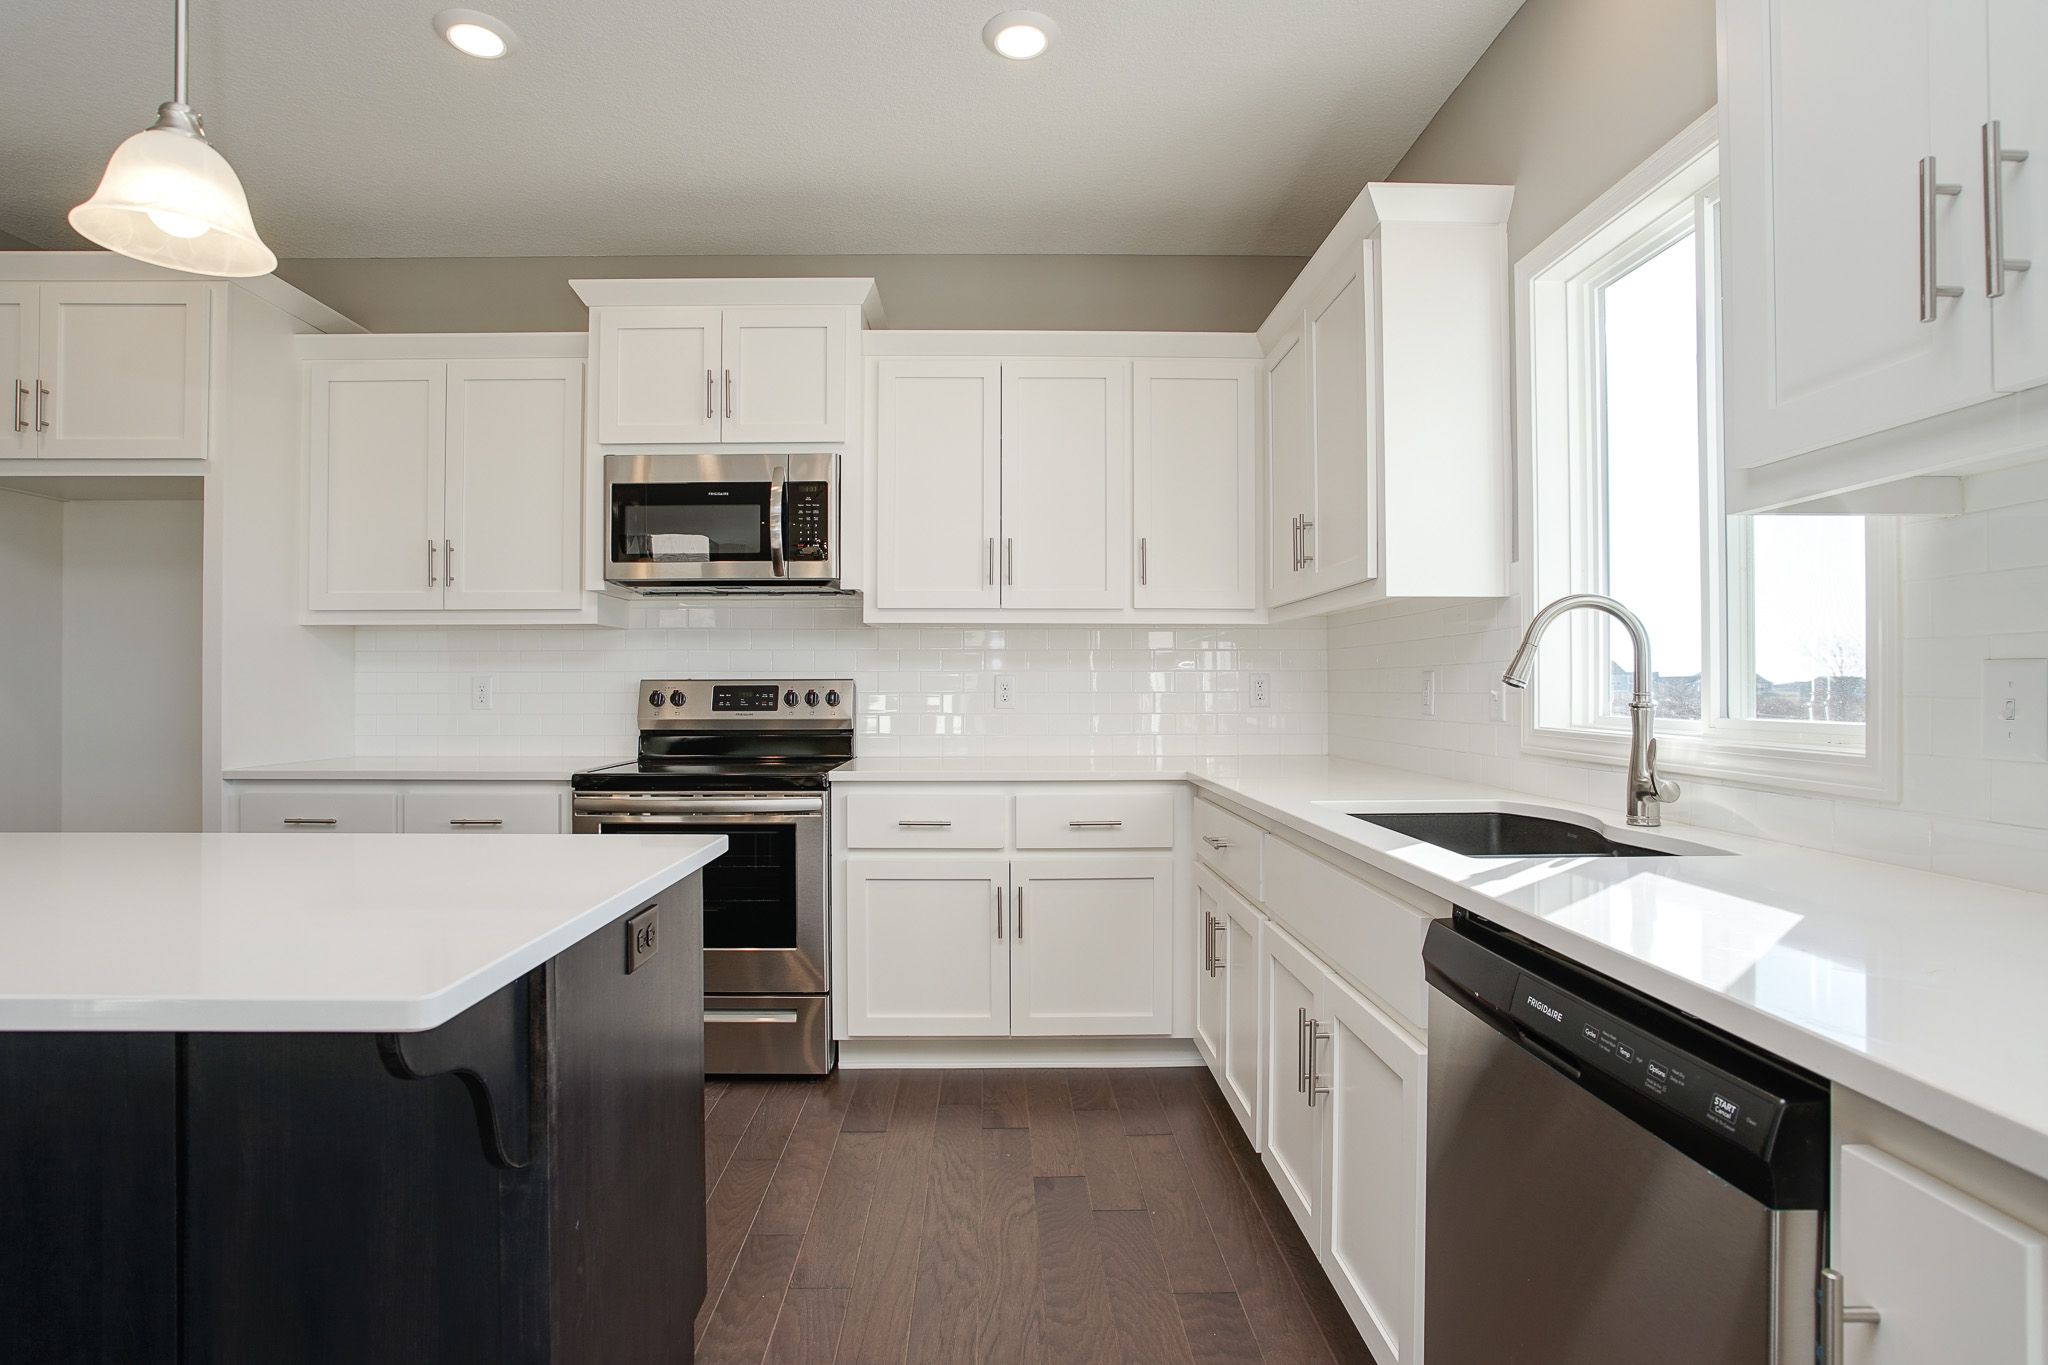 Kitchen featured in the Winfield By Summit Homes in Kansas City, MO